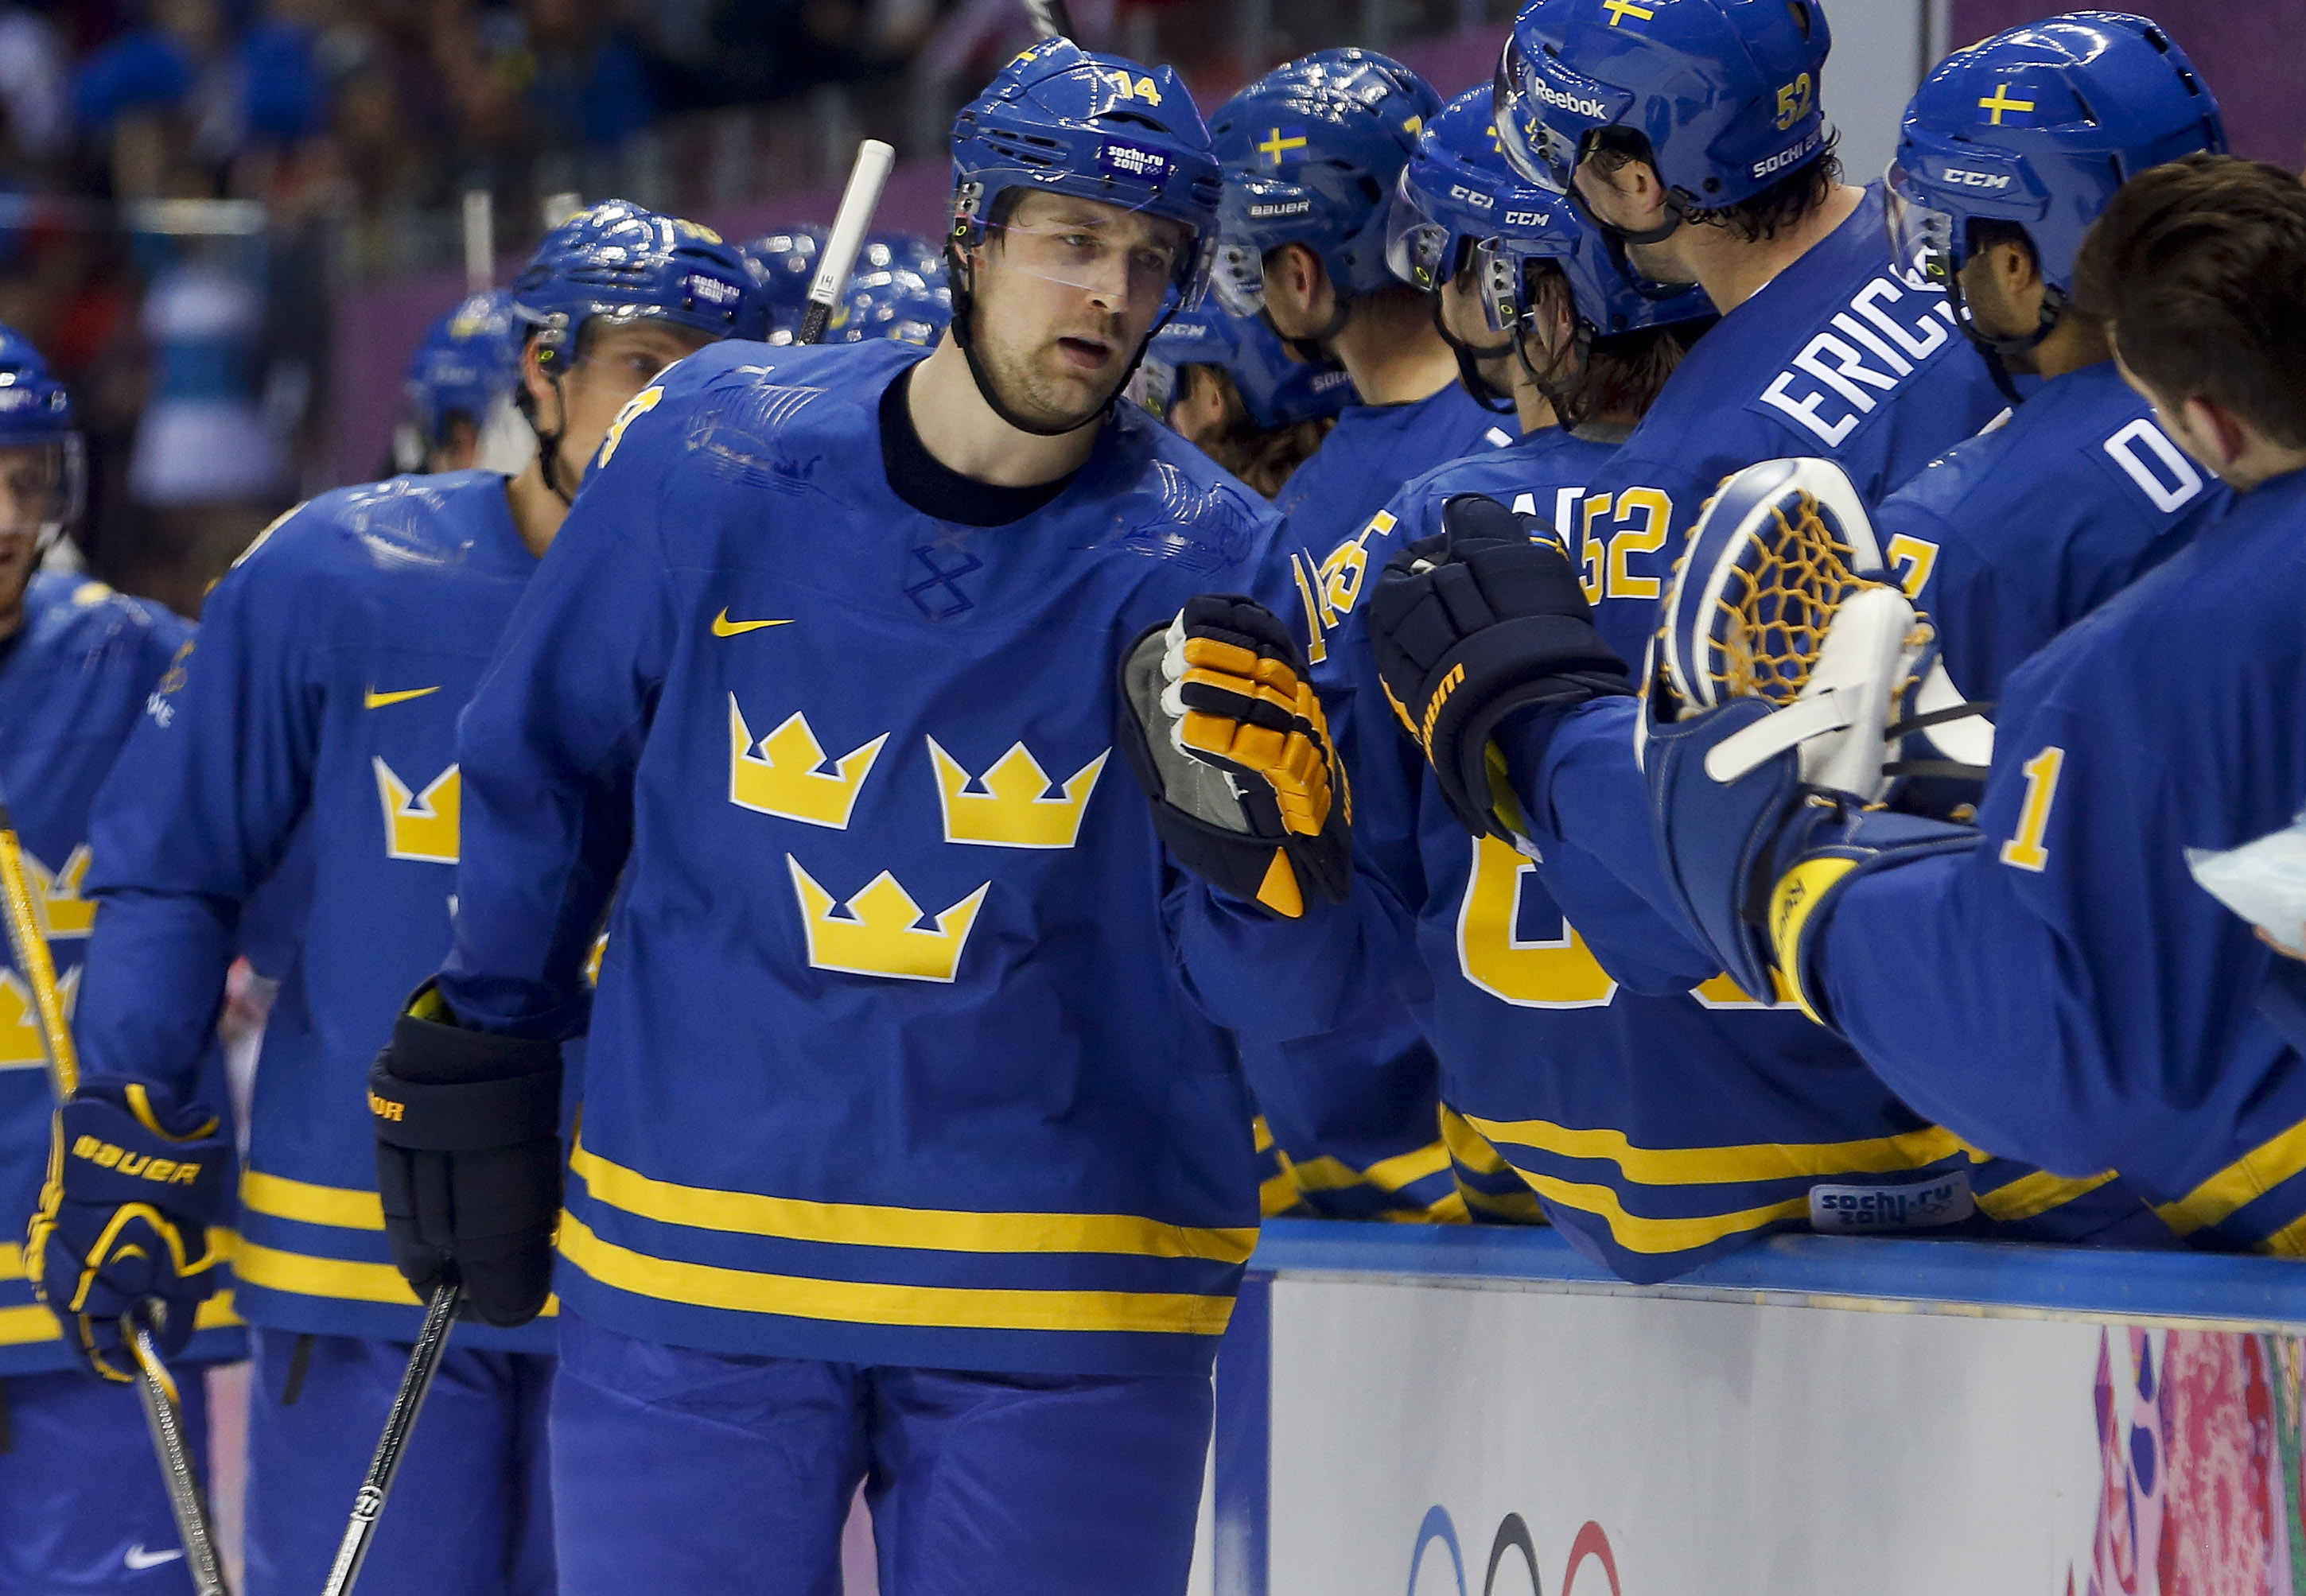 Sweden forward Patrik Berglund is congratulated by teammates after scoring a goal against the the Czech Republic in the first period of a men's ice hockey game at the 2014 Winter Olympics, Wednesday, Feb. 12, 2014, in Sochi, Russia. (AP Photo/Mark Humphrey)